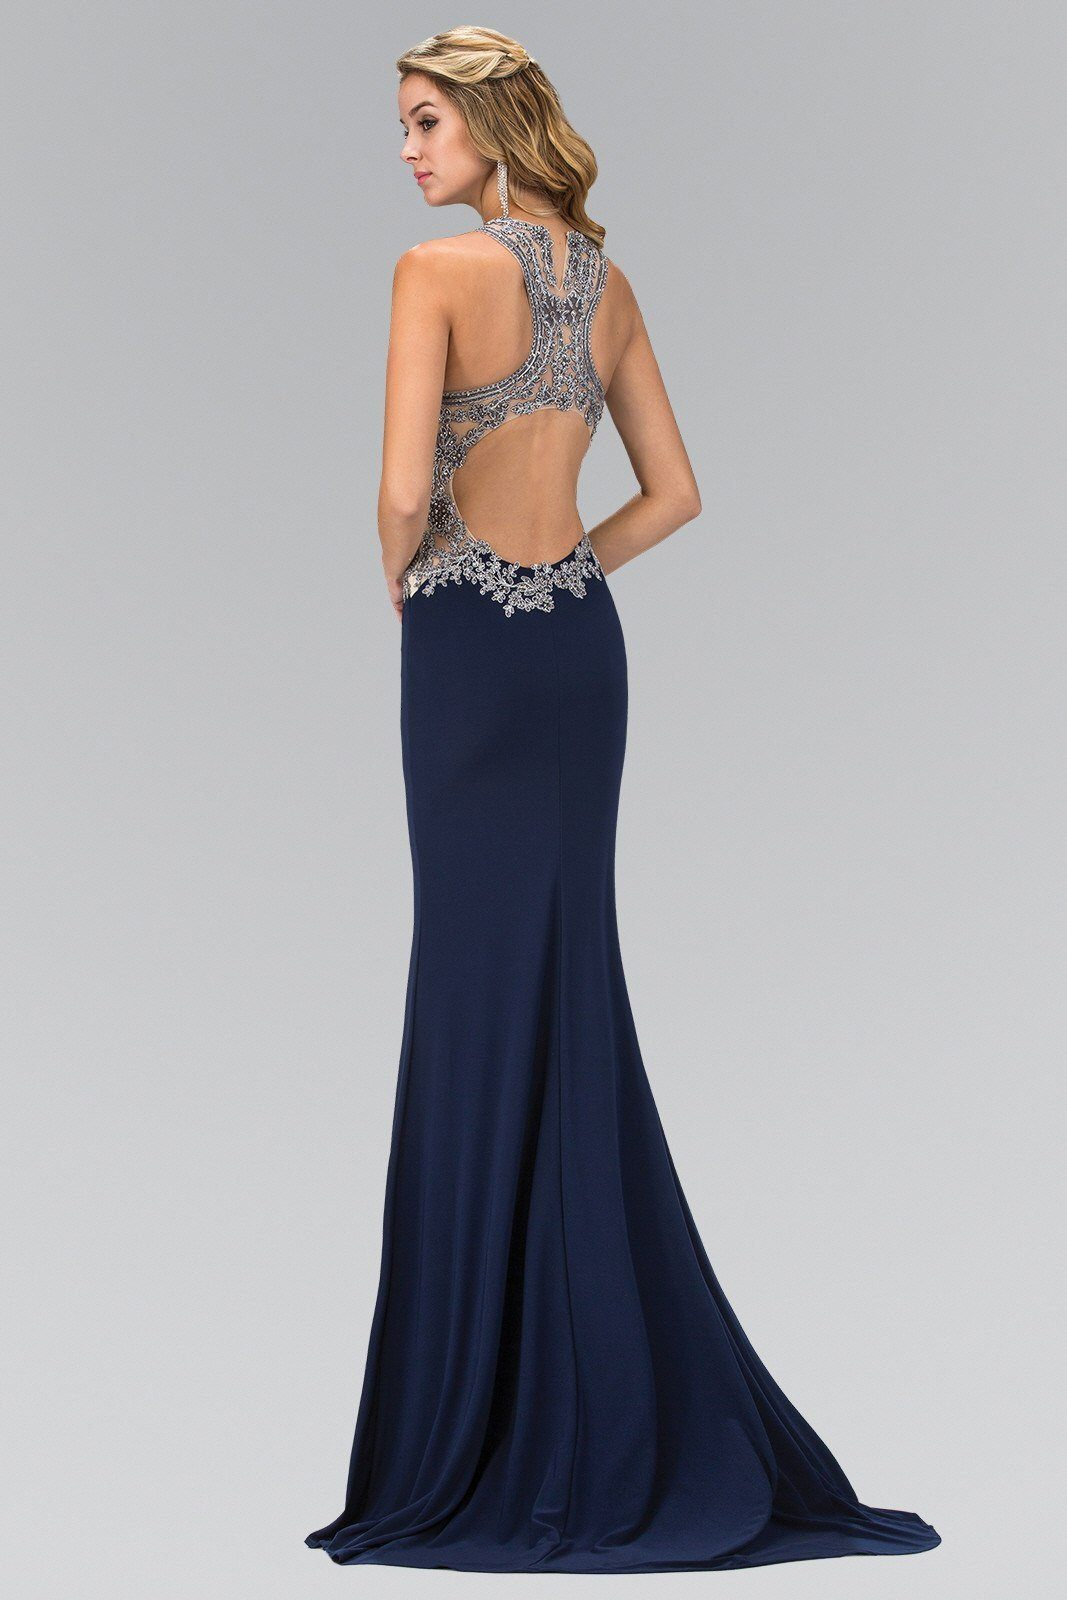 formal evening gown with cut out back 103-GL1331 – Simply Fab Dress